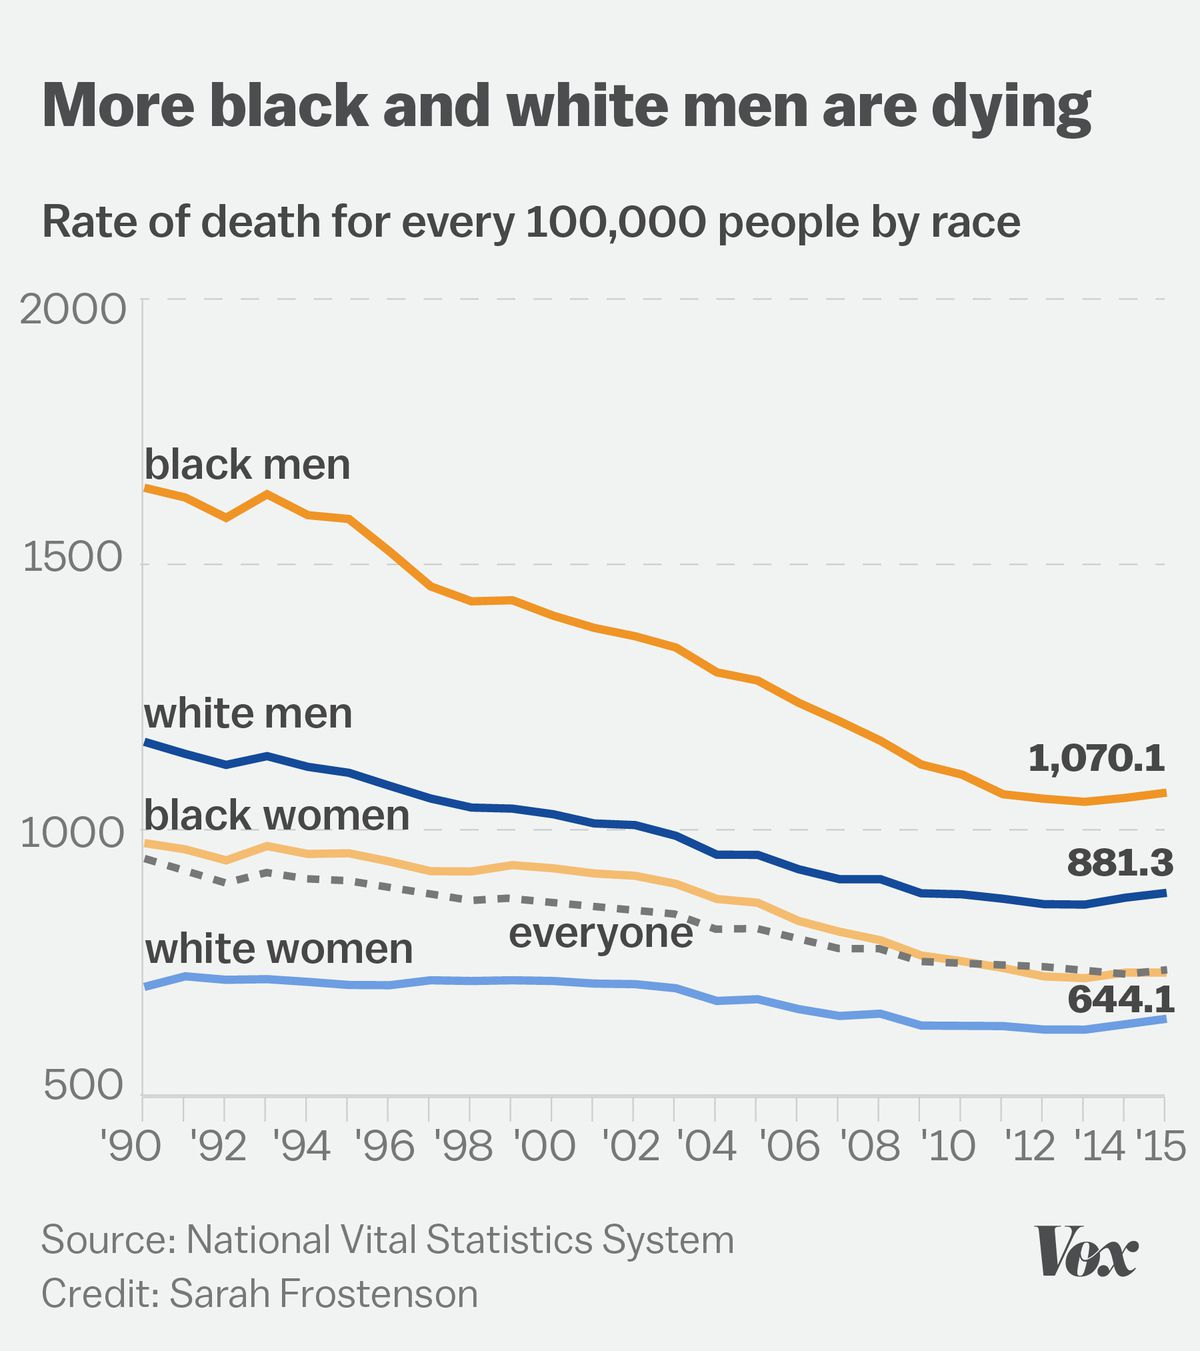 Chart showing the age-adjusted rate of death for white men and women and black men and women